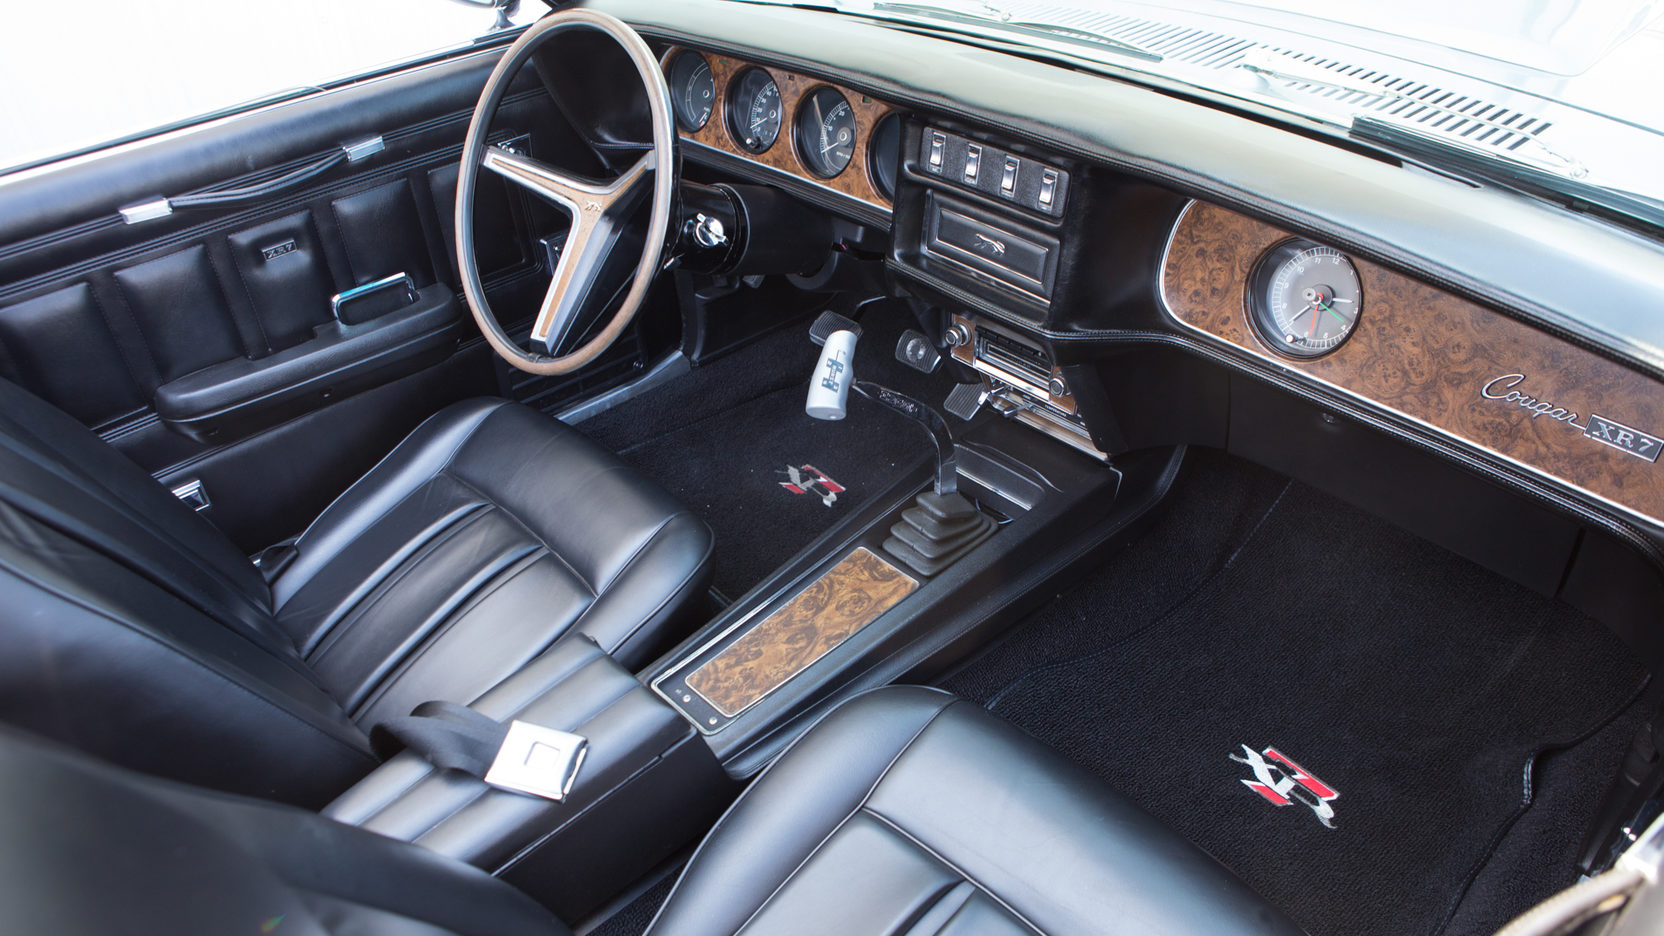 1970 Mercury Cougar XR-7 interior hurst shifter